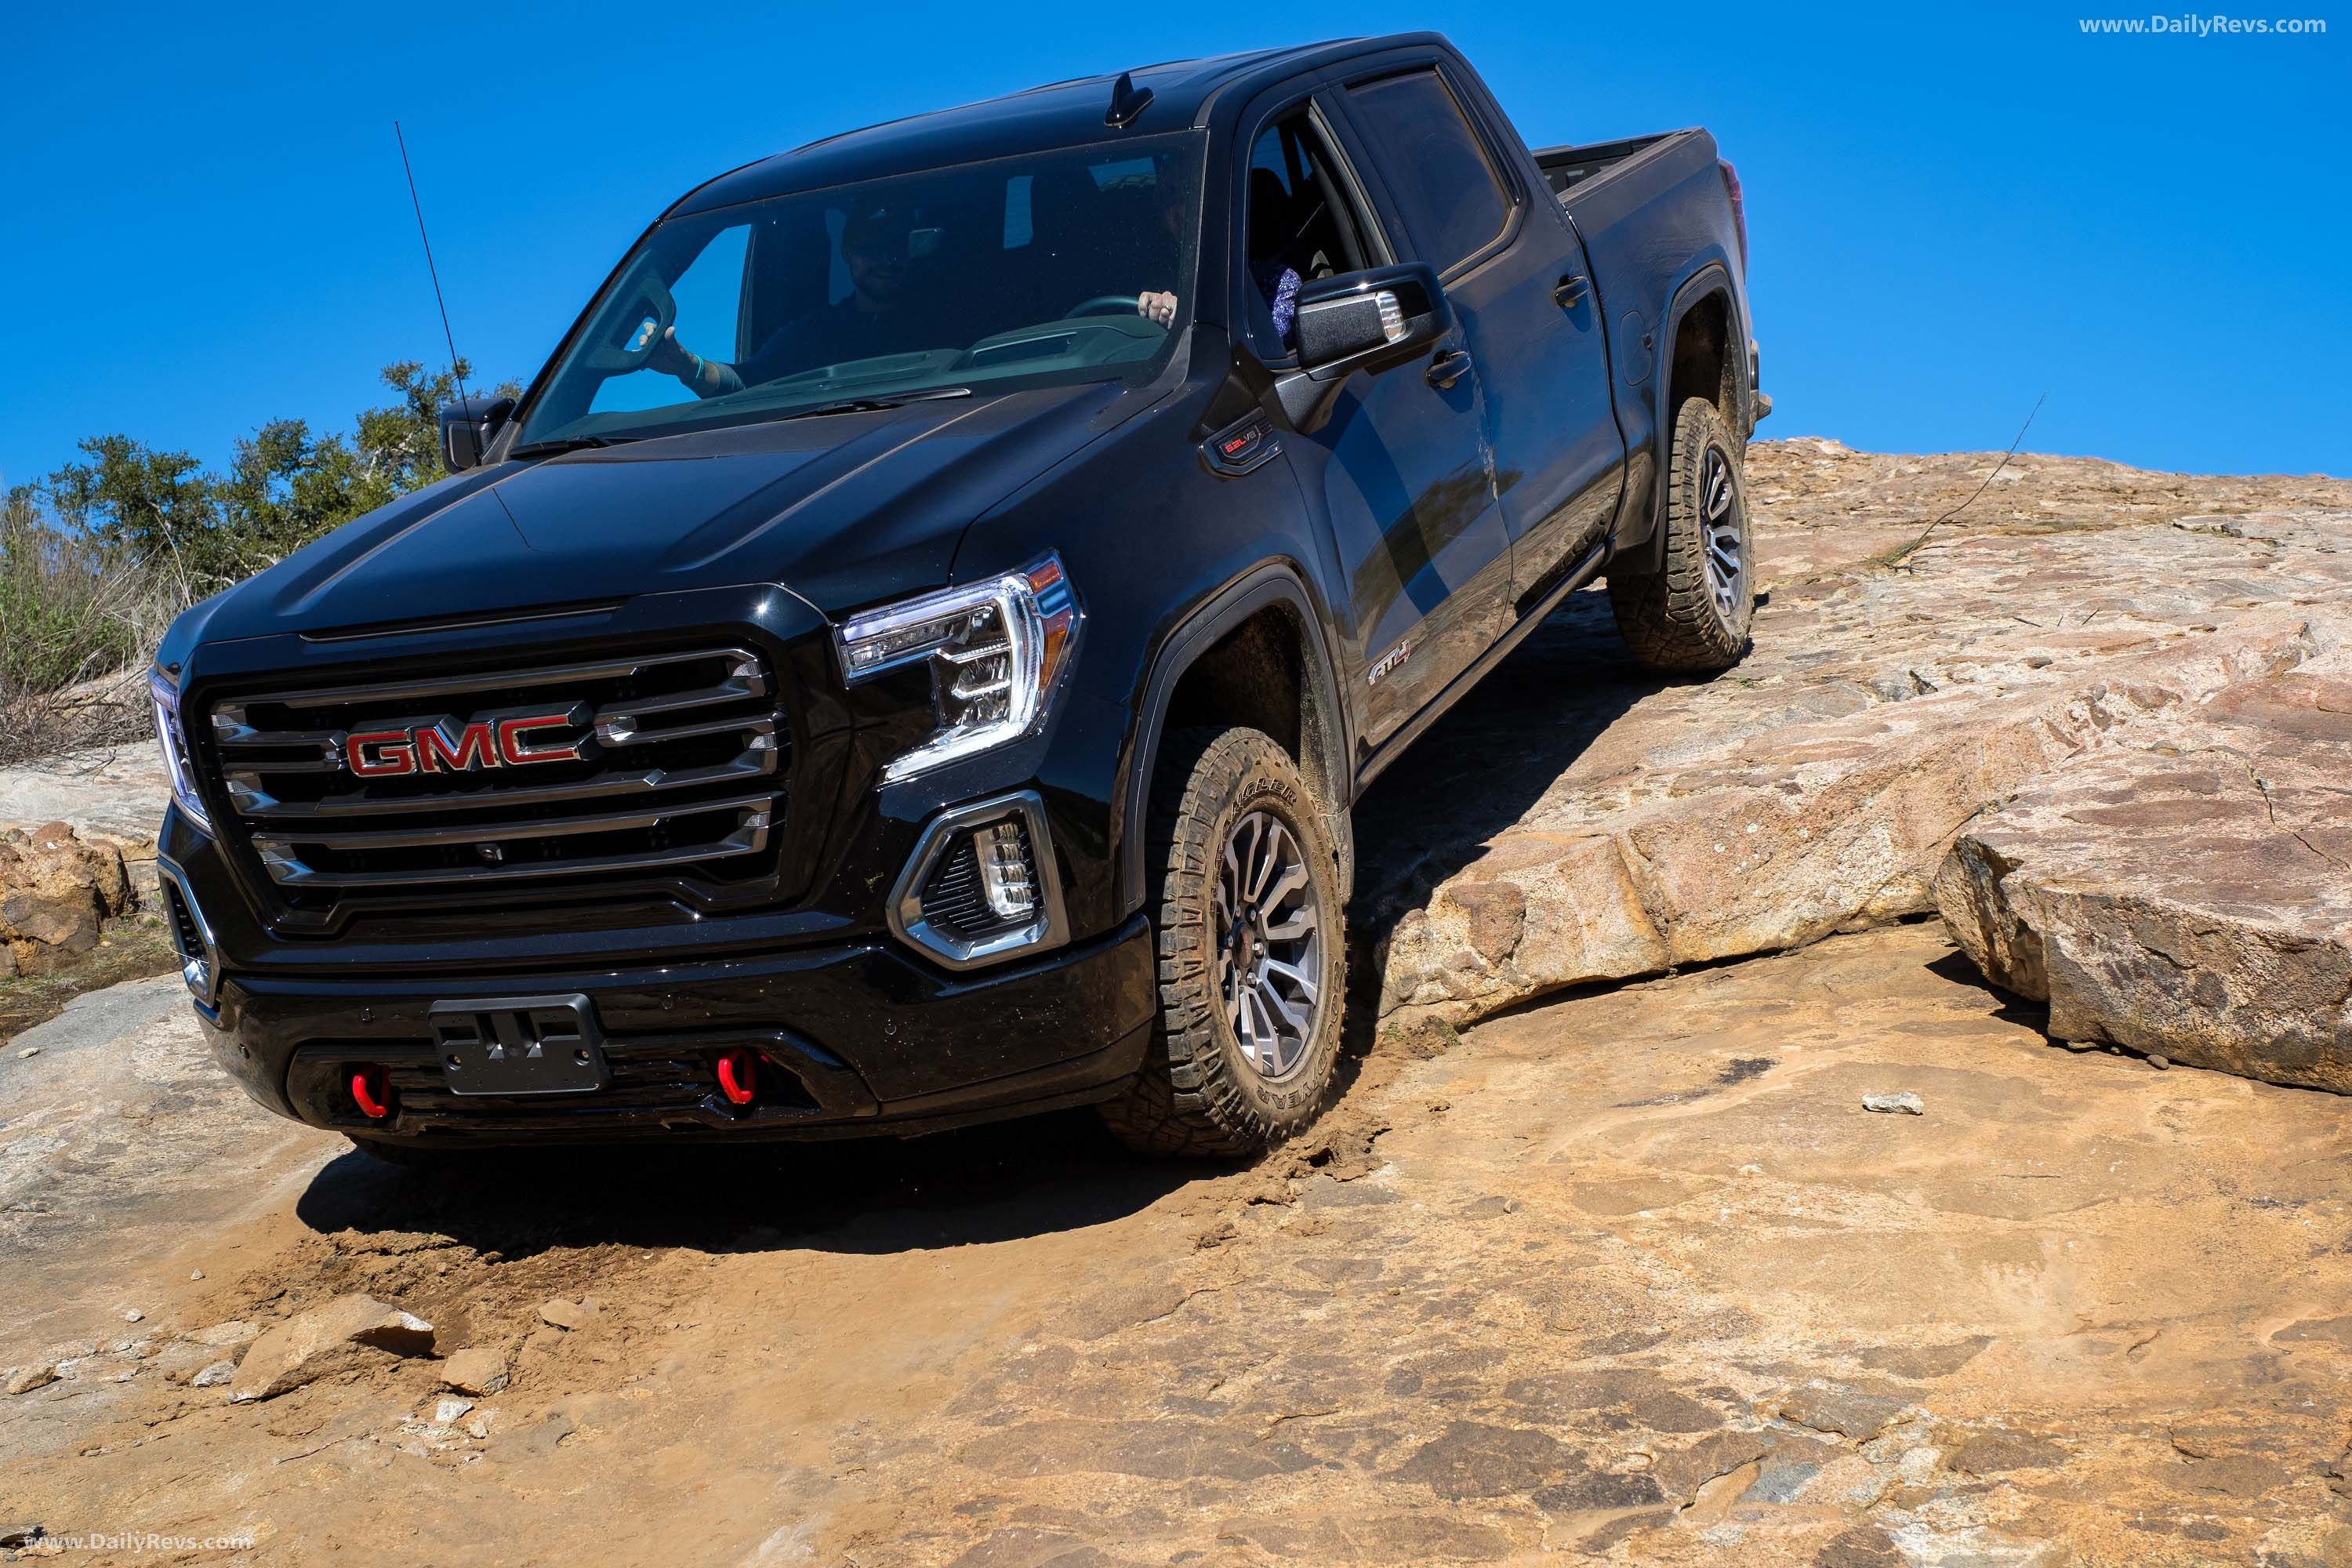 2019 Gmc Sierra At4 Hq Pictures Specs Information And Videos Dailyrevs In 2020 Gmc Sierra Gmc Sierra